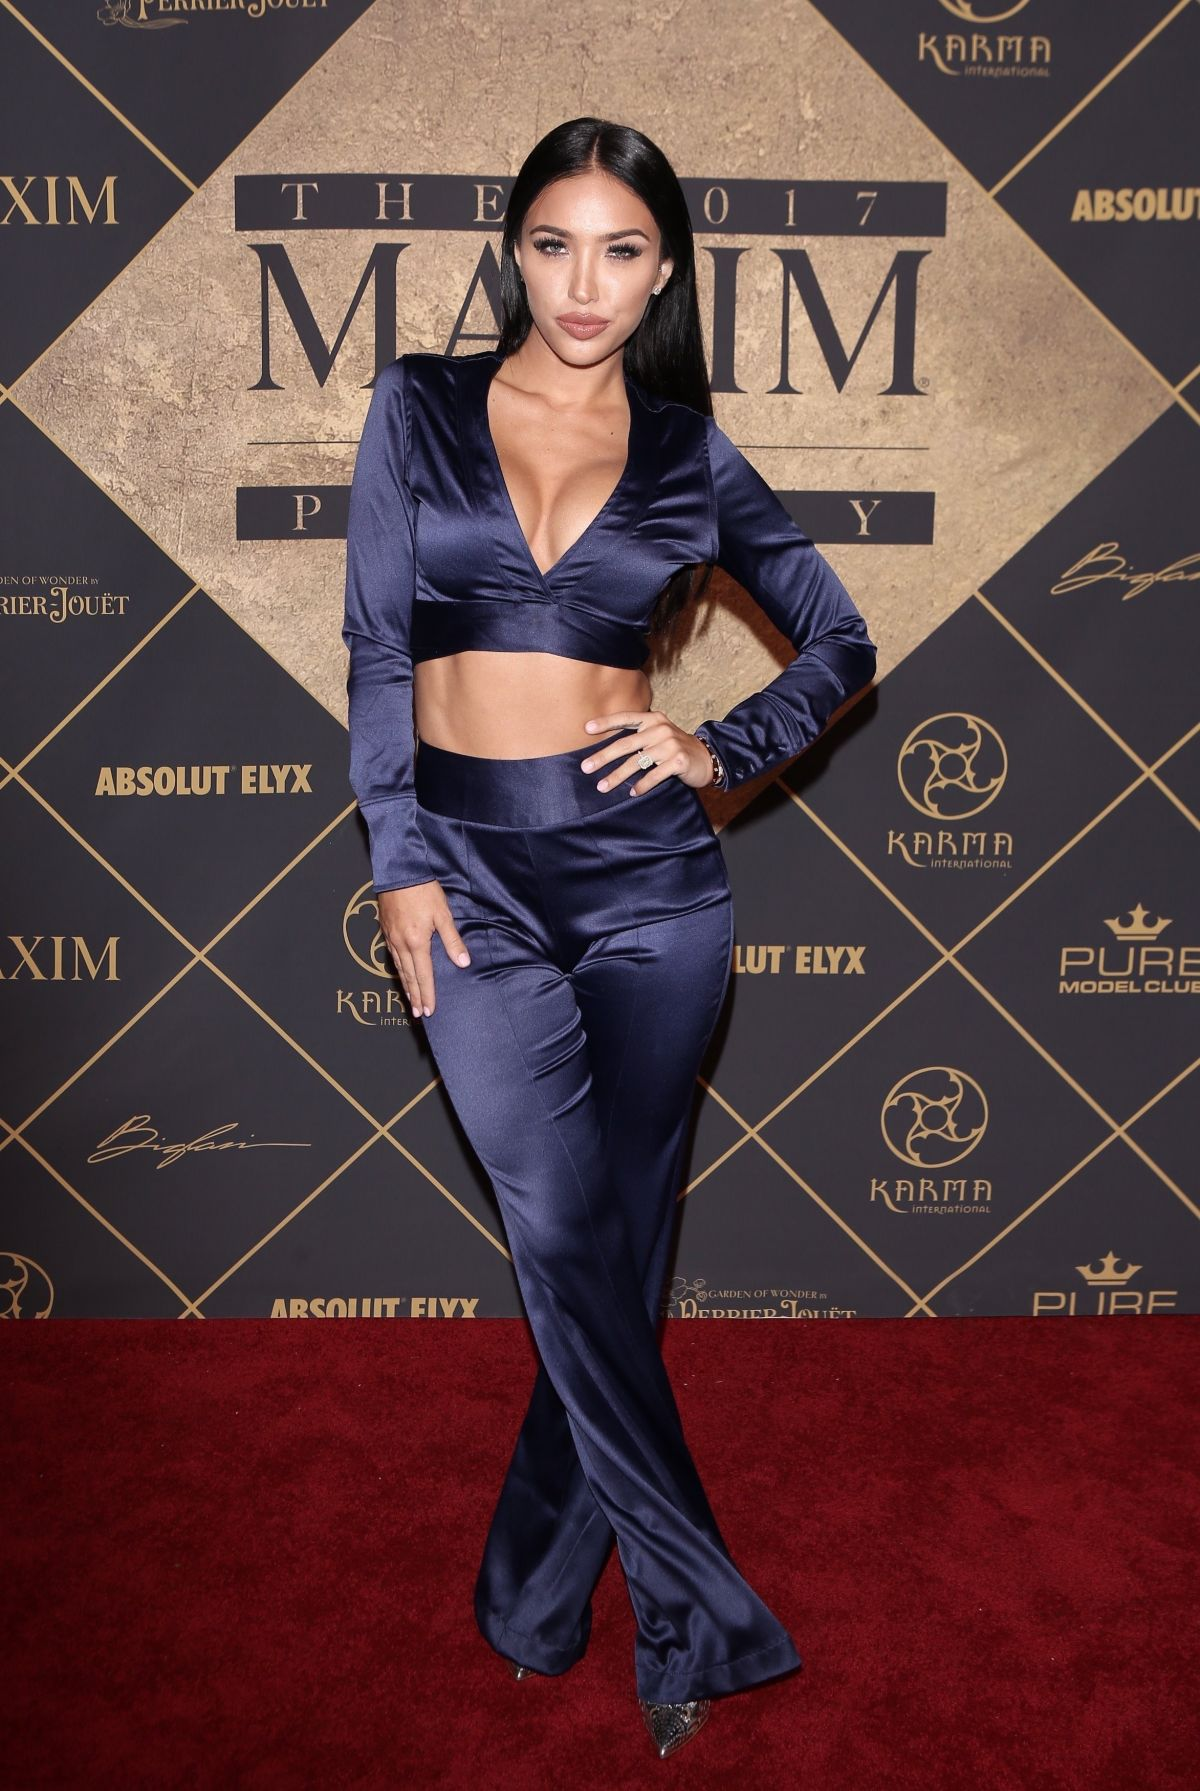 Bre Tiesi At 2017 Maxim Hot 100 Party In Los Angeles 06242017  Hawtcelebs-7063